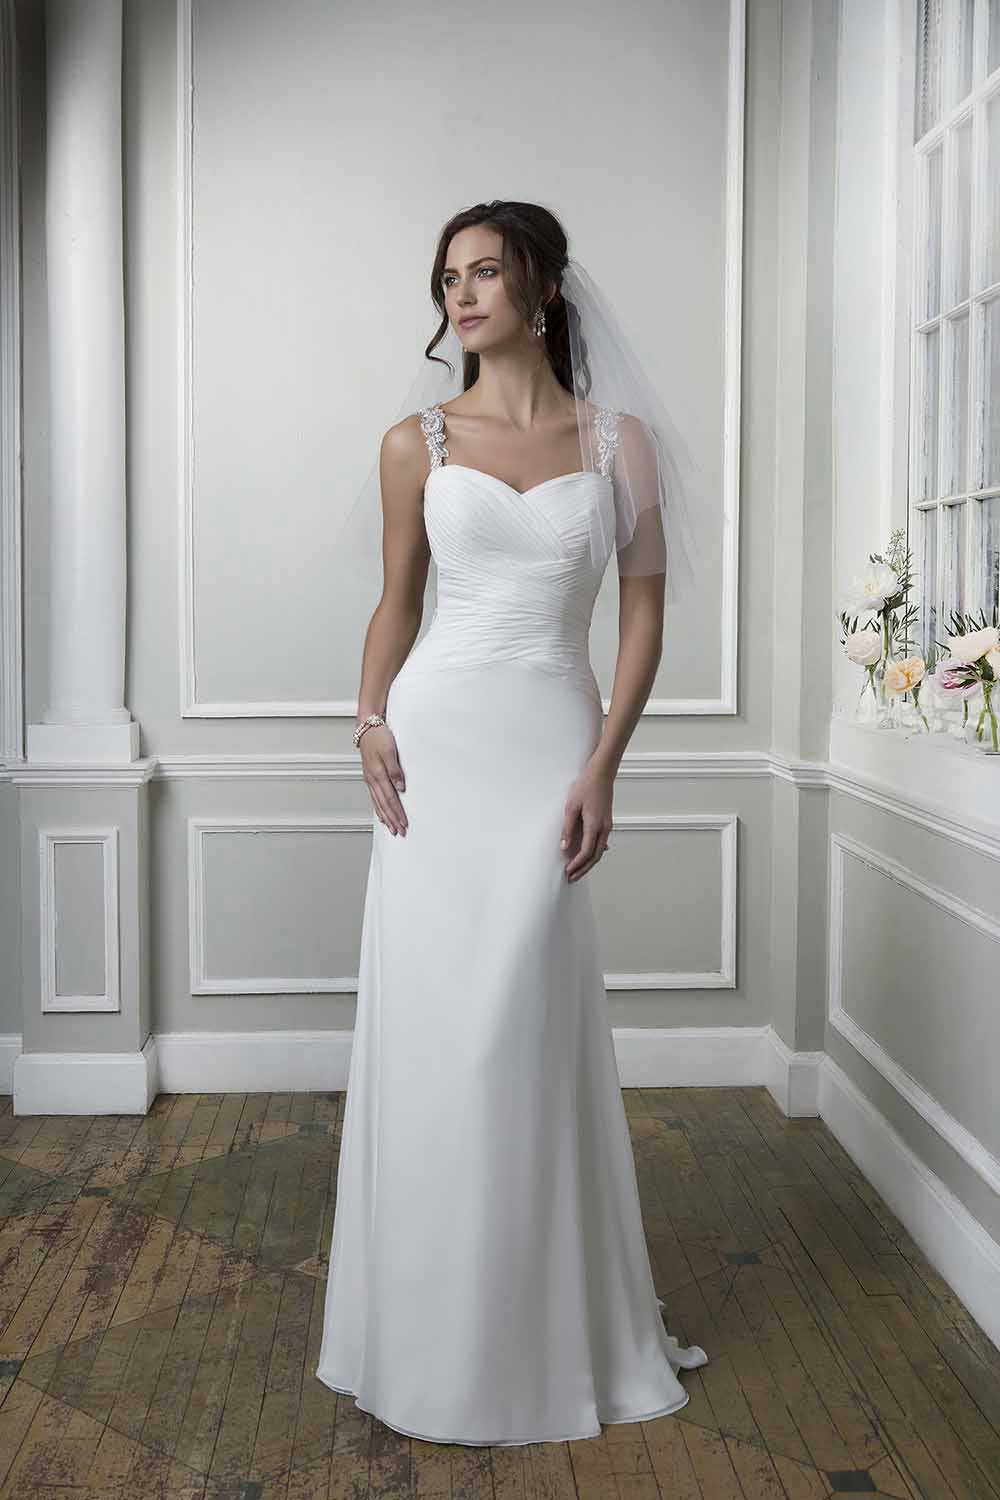 wedding dress hire brisbane wedding dresses rental newcastle nsw cheap wedding dresses